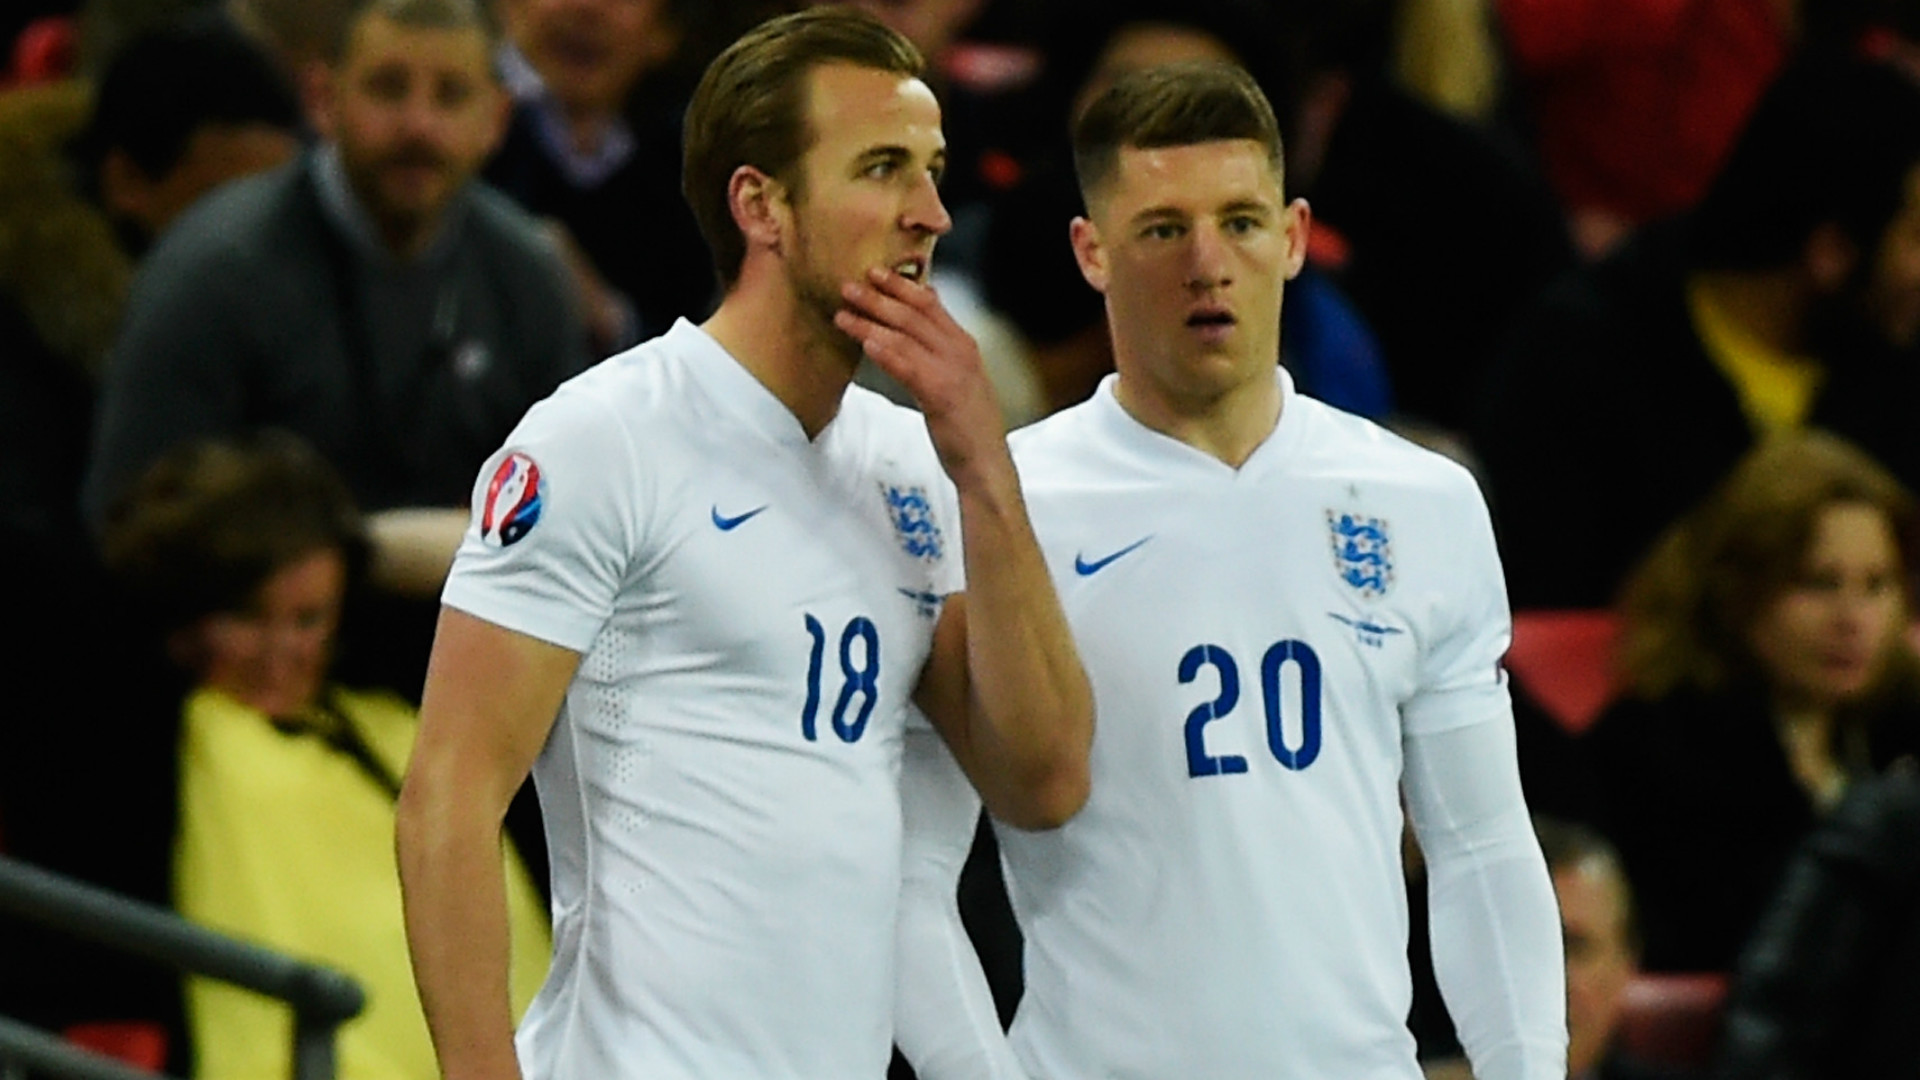 Harry Kane Ross Barkley England Lithuania Euro 2016 qualifier 27032015